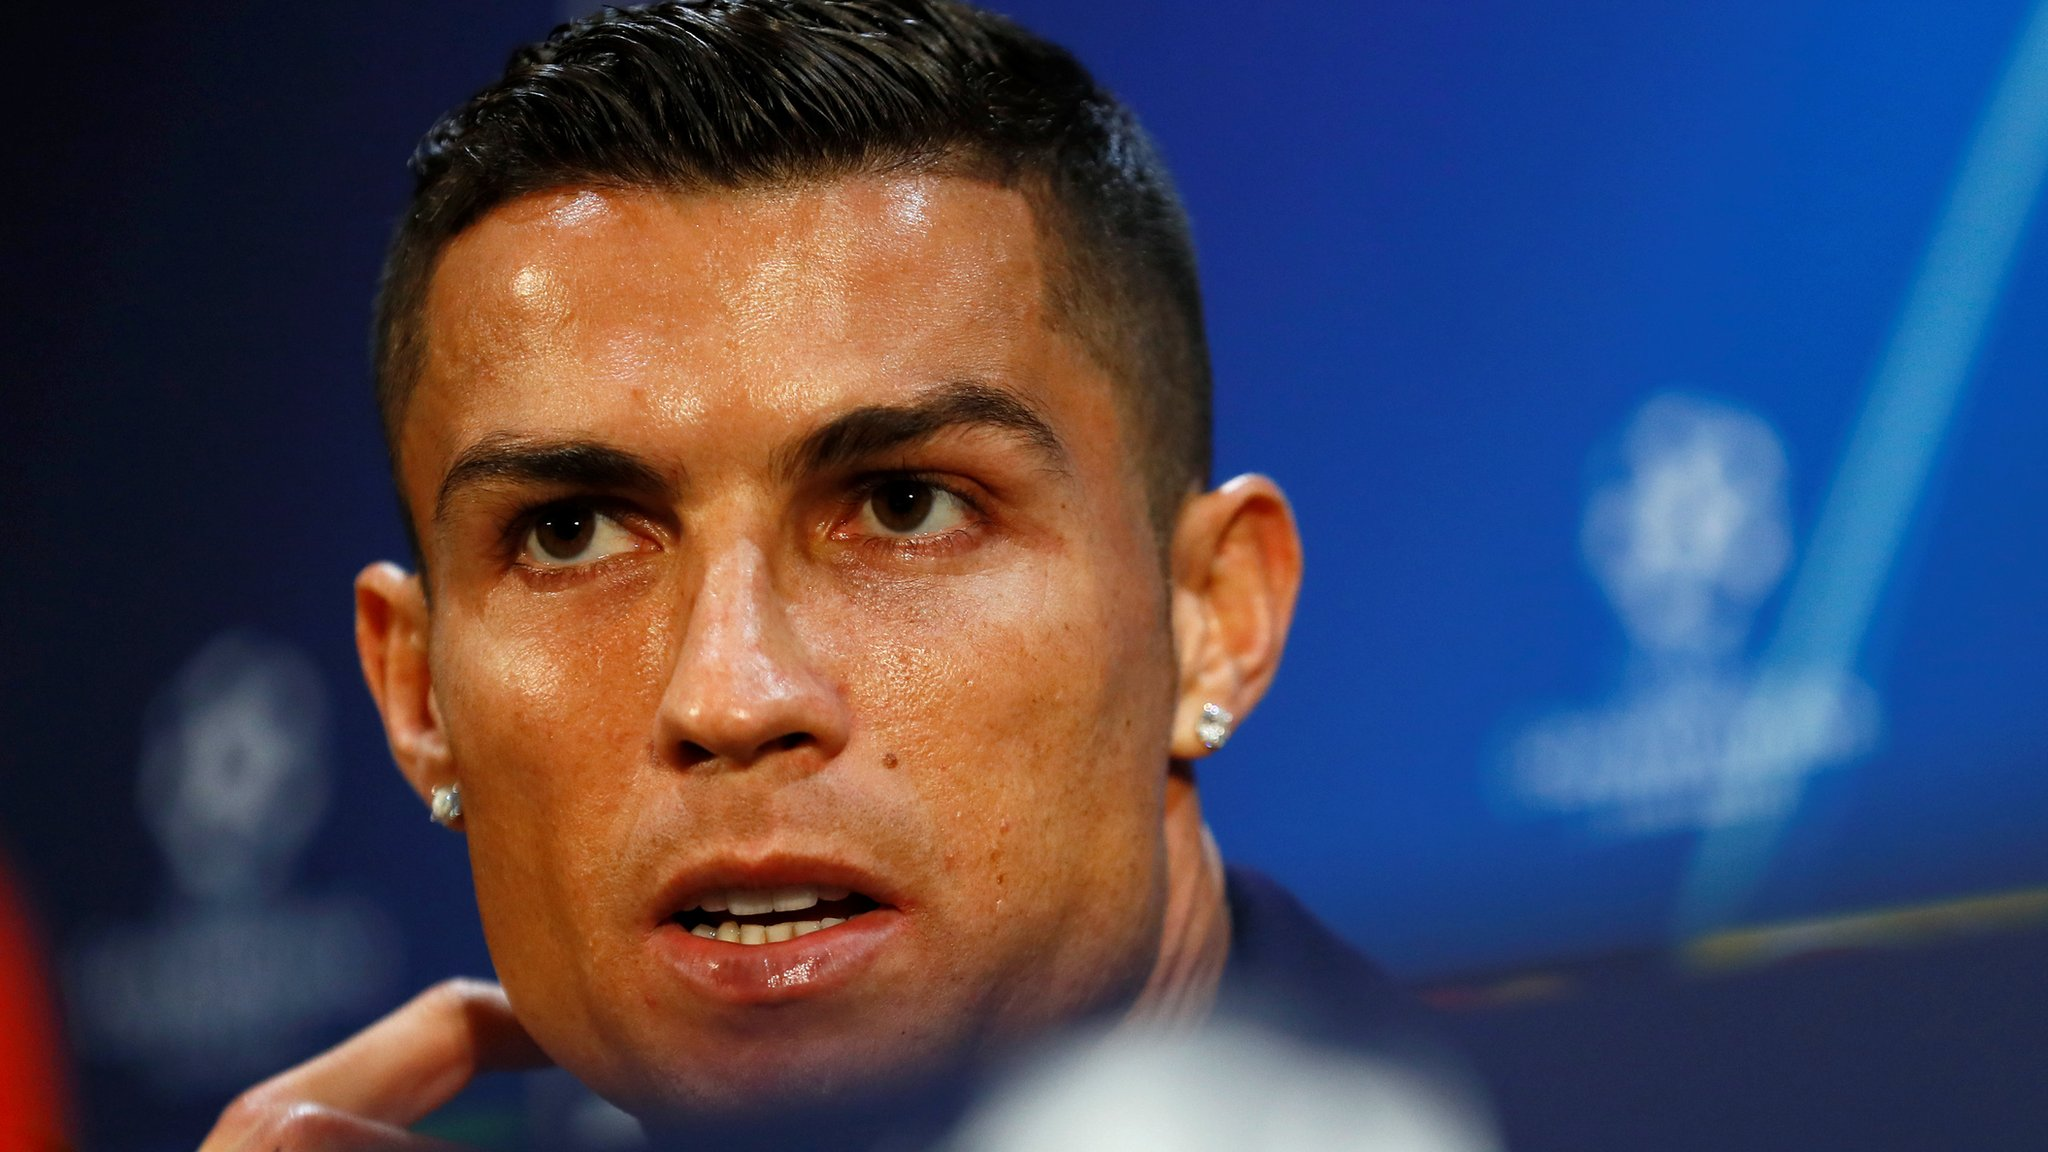 Cristiano Ronaldo rape allegation: Juventus forward says 'lawyers confident'